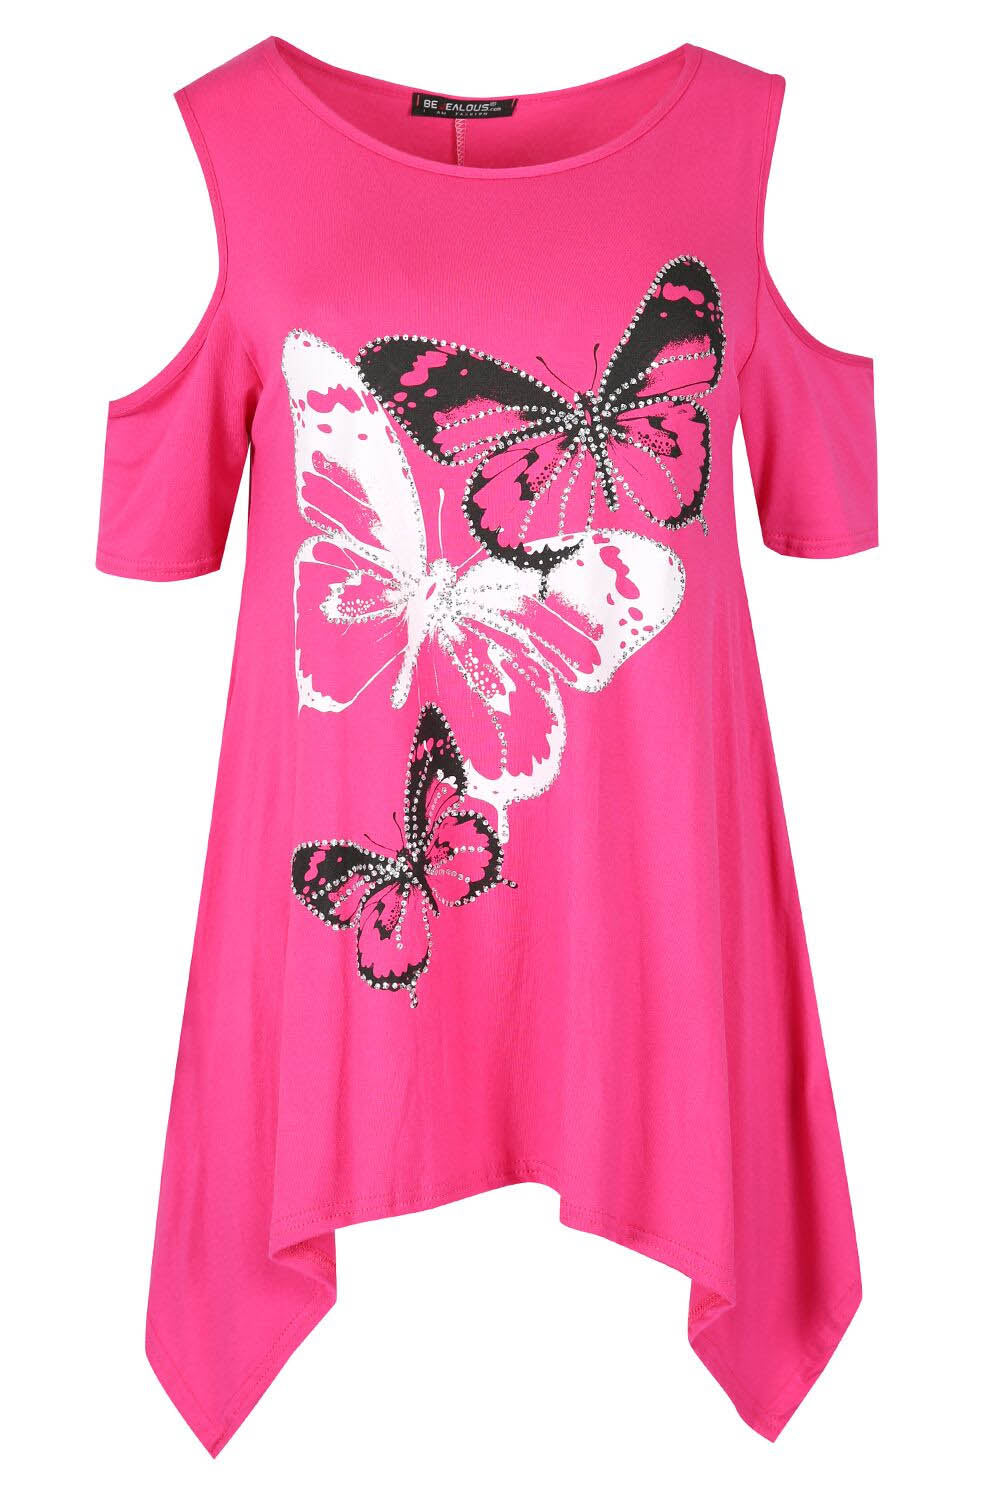 Cold Shoulder Butterfly Print Dipped Hem Top - bejealous-com